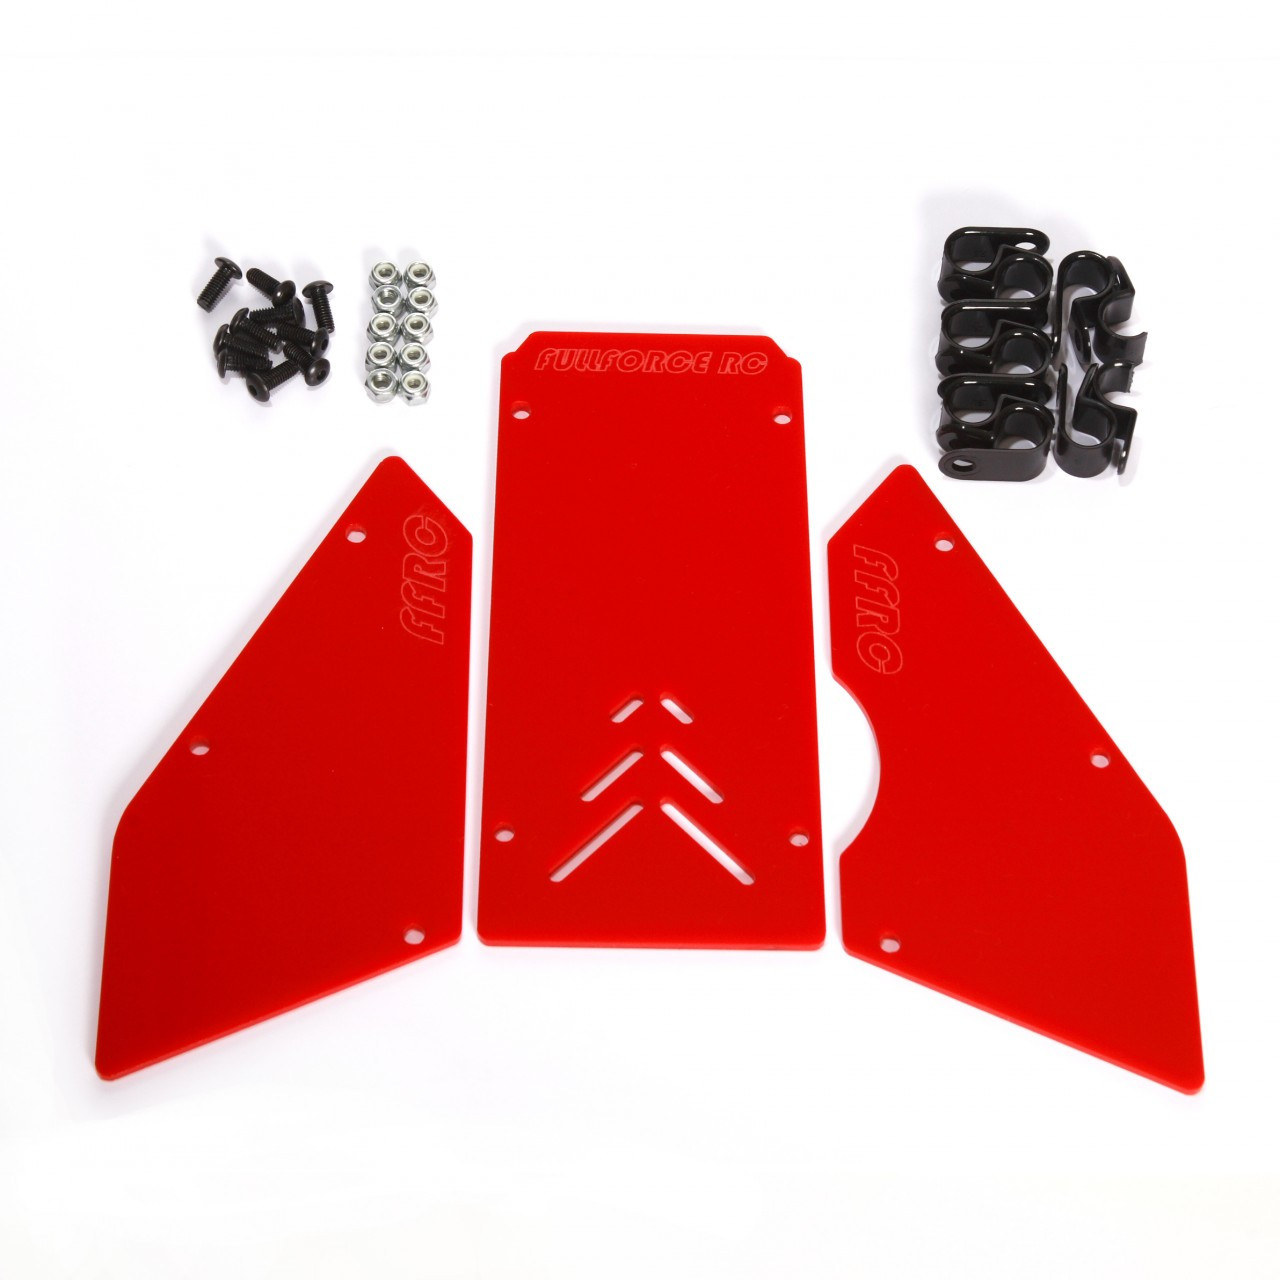 HPI Baja 3 piece windows available in Solid Red!  Complete with install hardware.